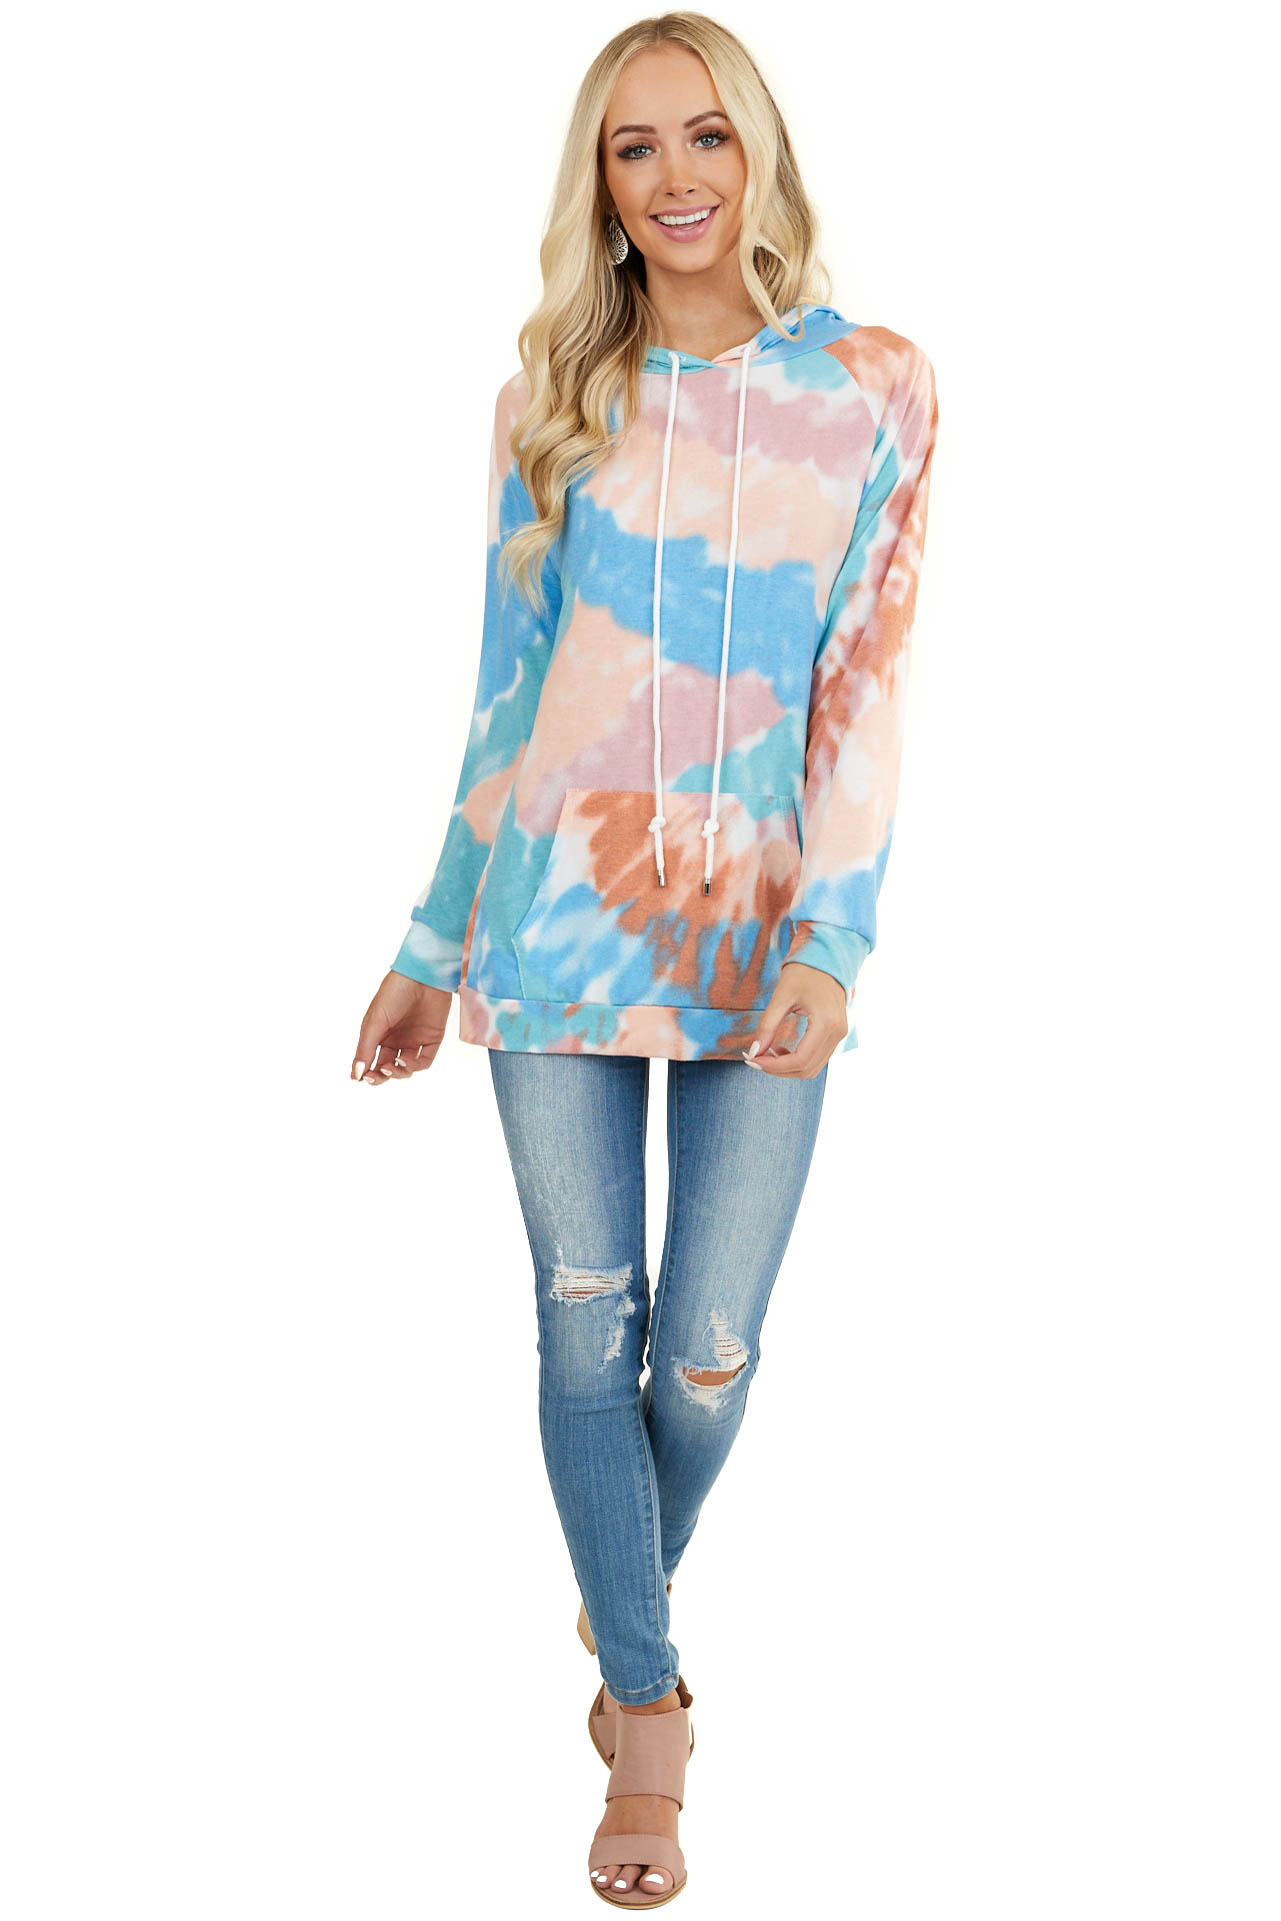 Multicolor Tie Dye Knit Hooded Top with Long Sleeves